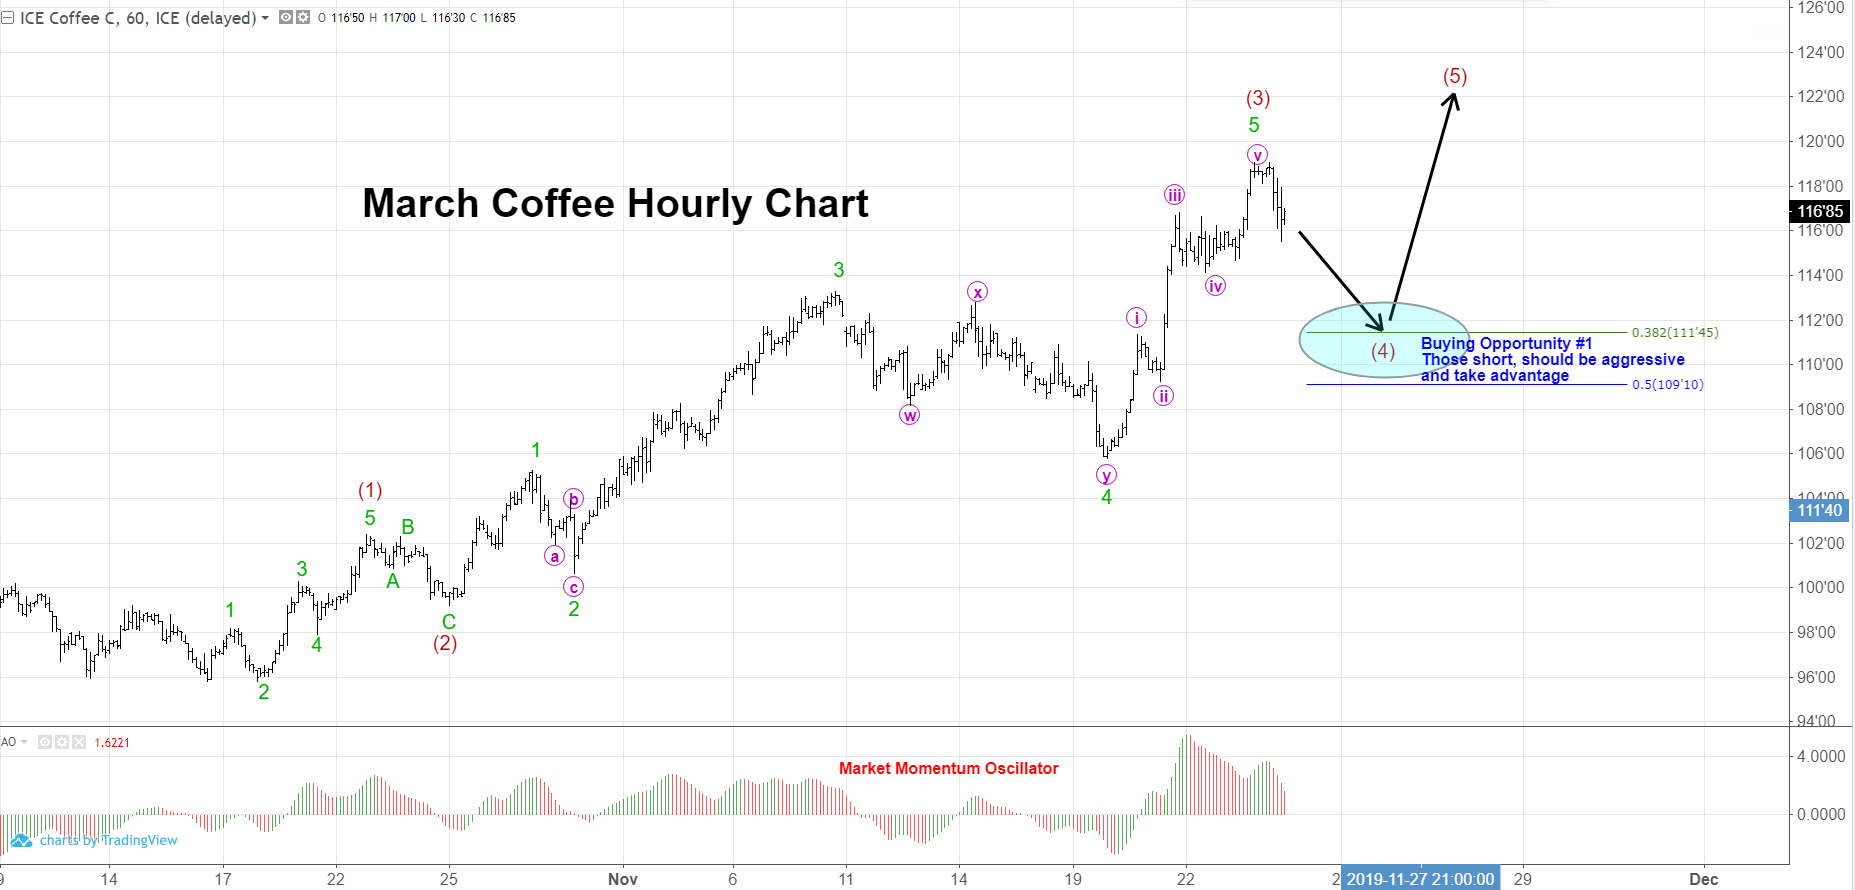 March Coffee Futures Hourly Chart